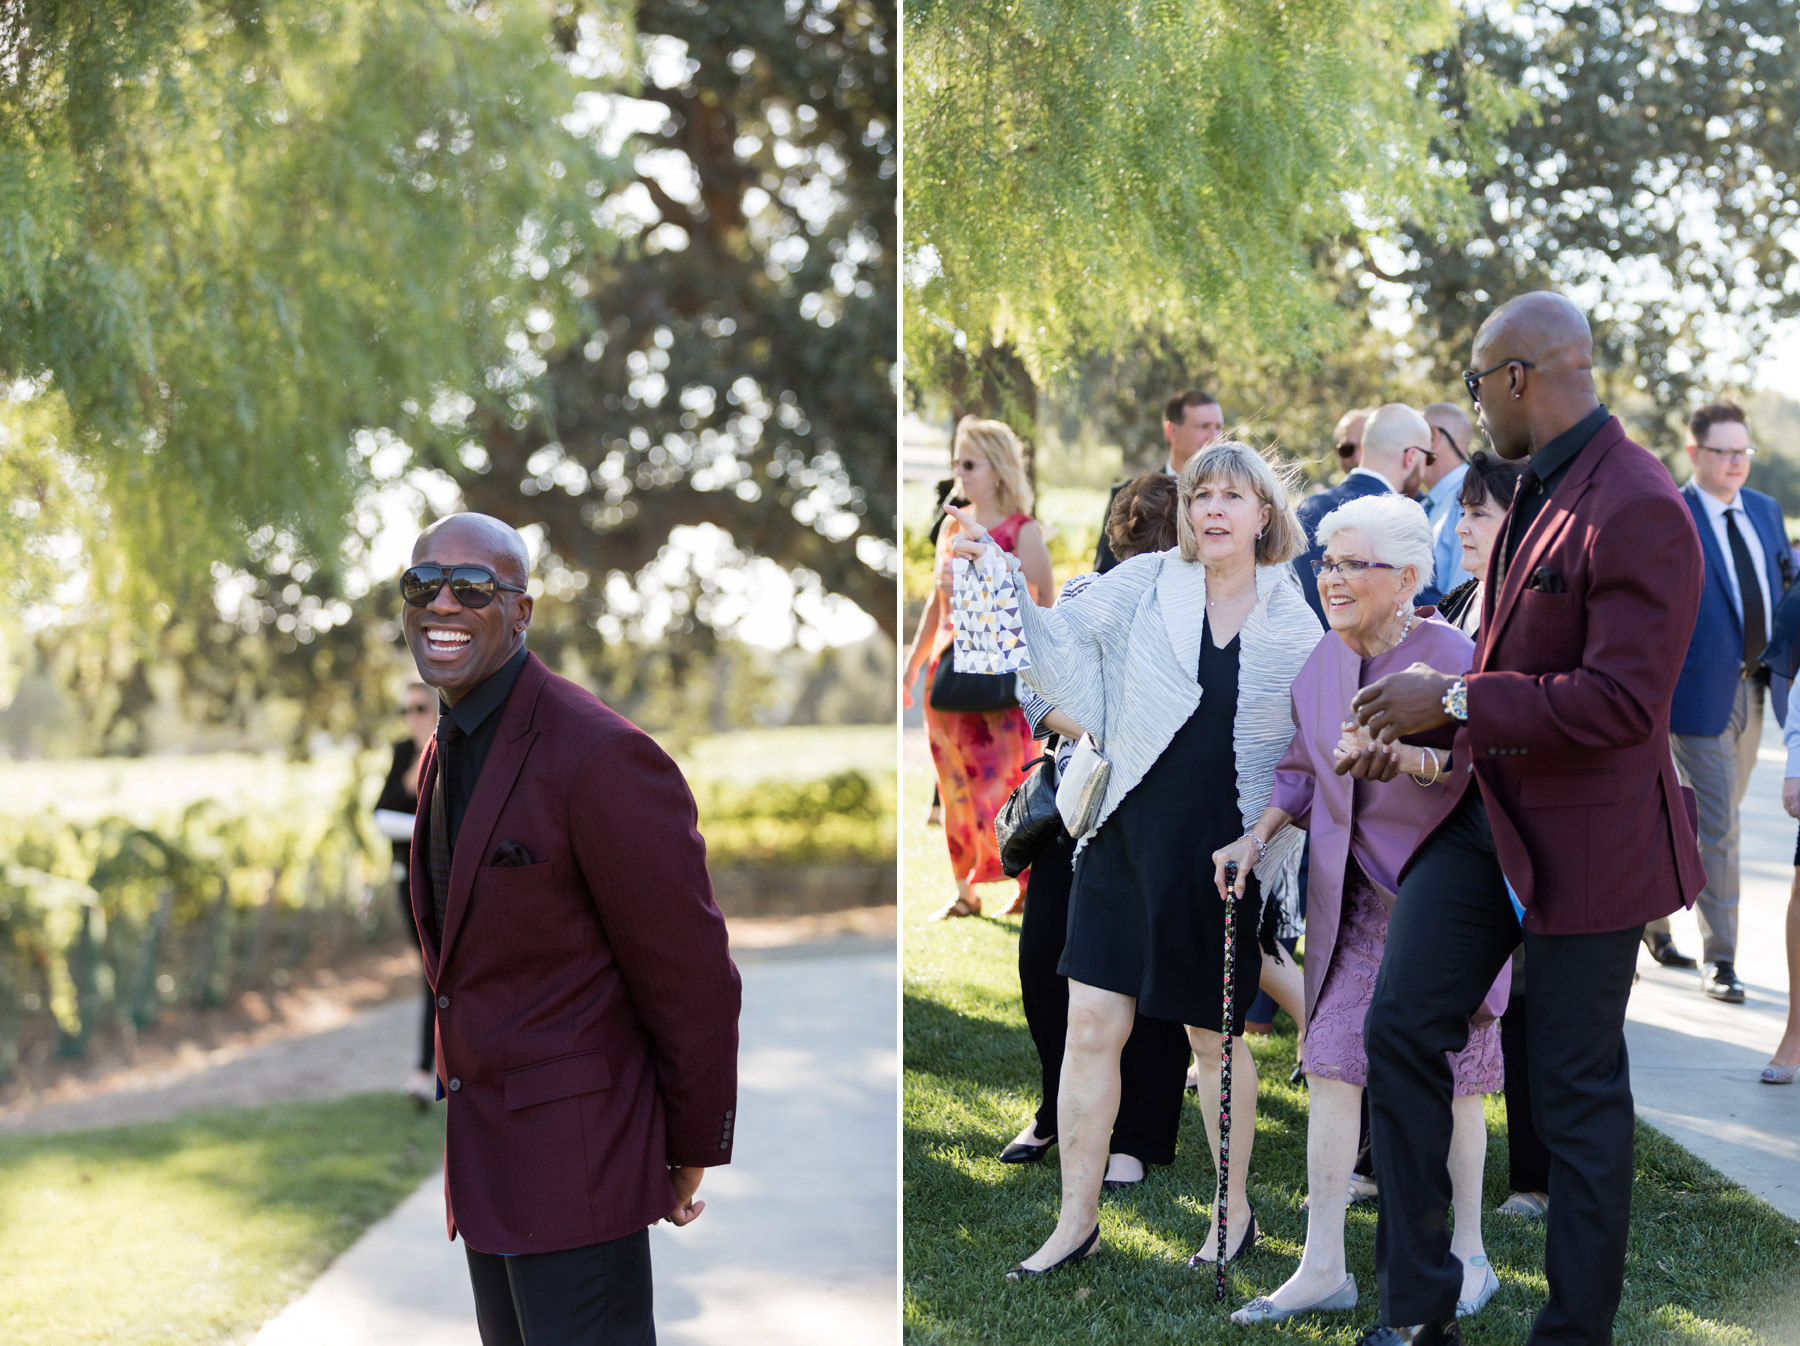 guests arrive at wedding roblar winery